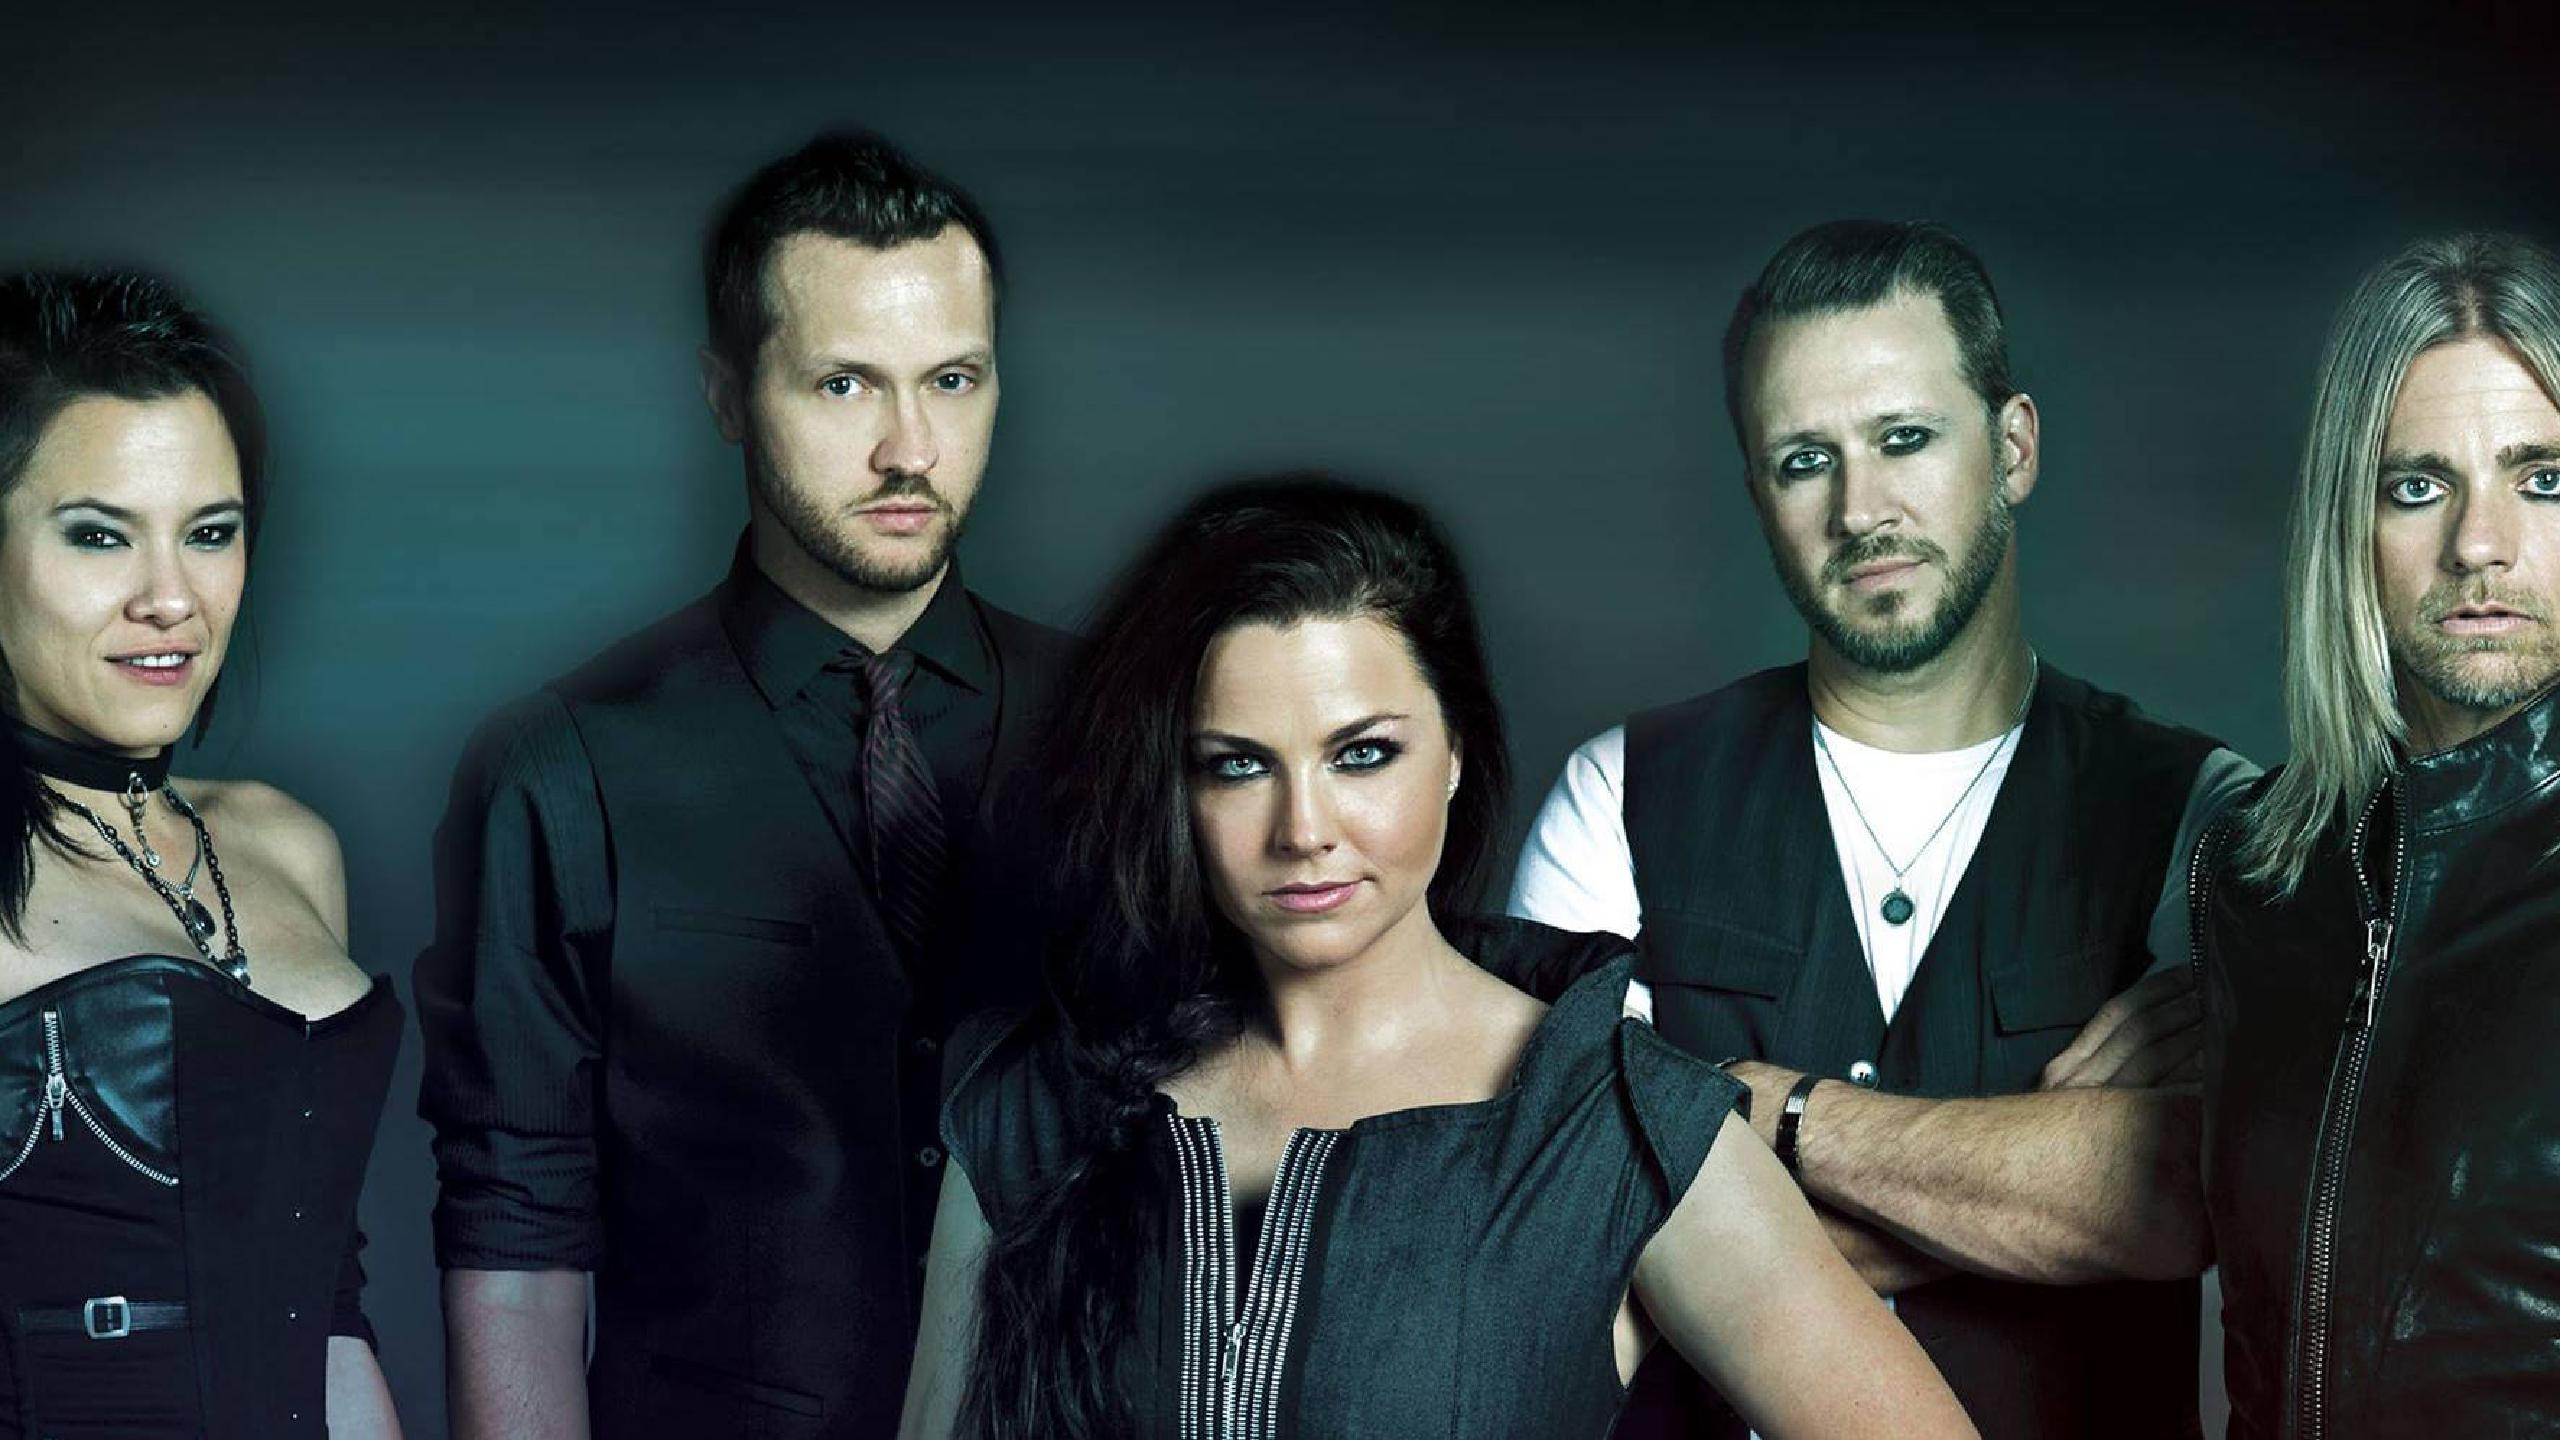 Evanescence Tour 2020.Evanescence Tour Dates 2019 2020 Evanescence Tickets And